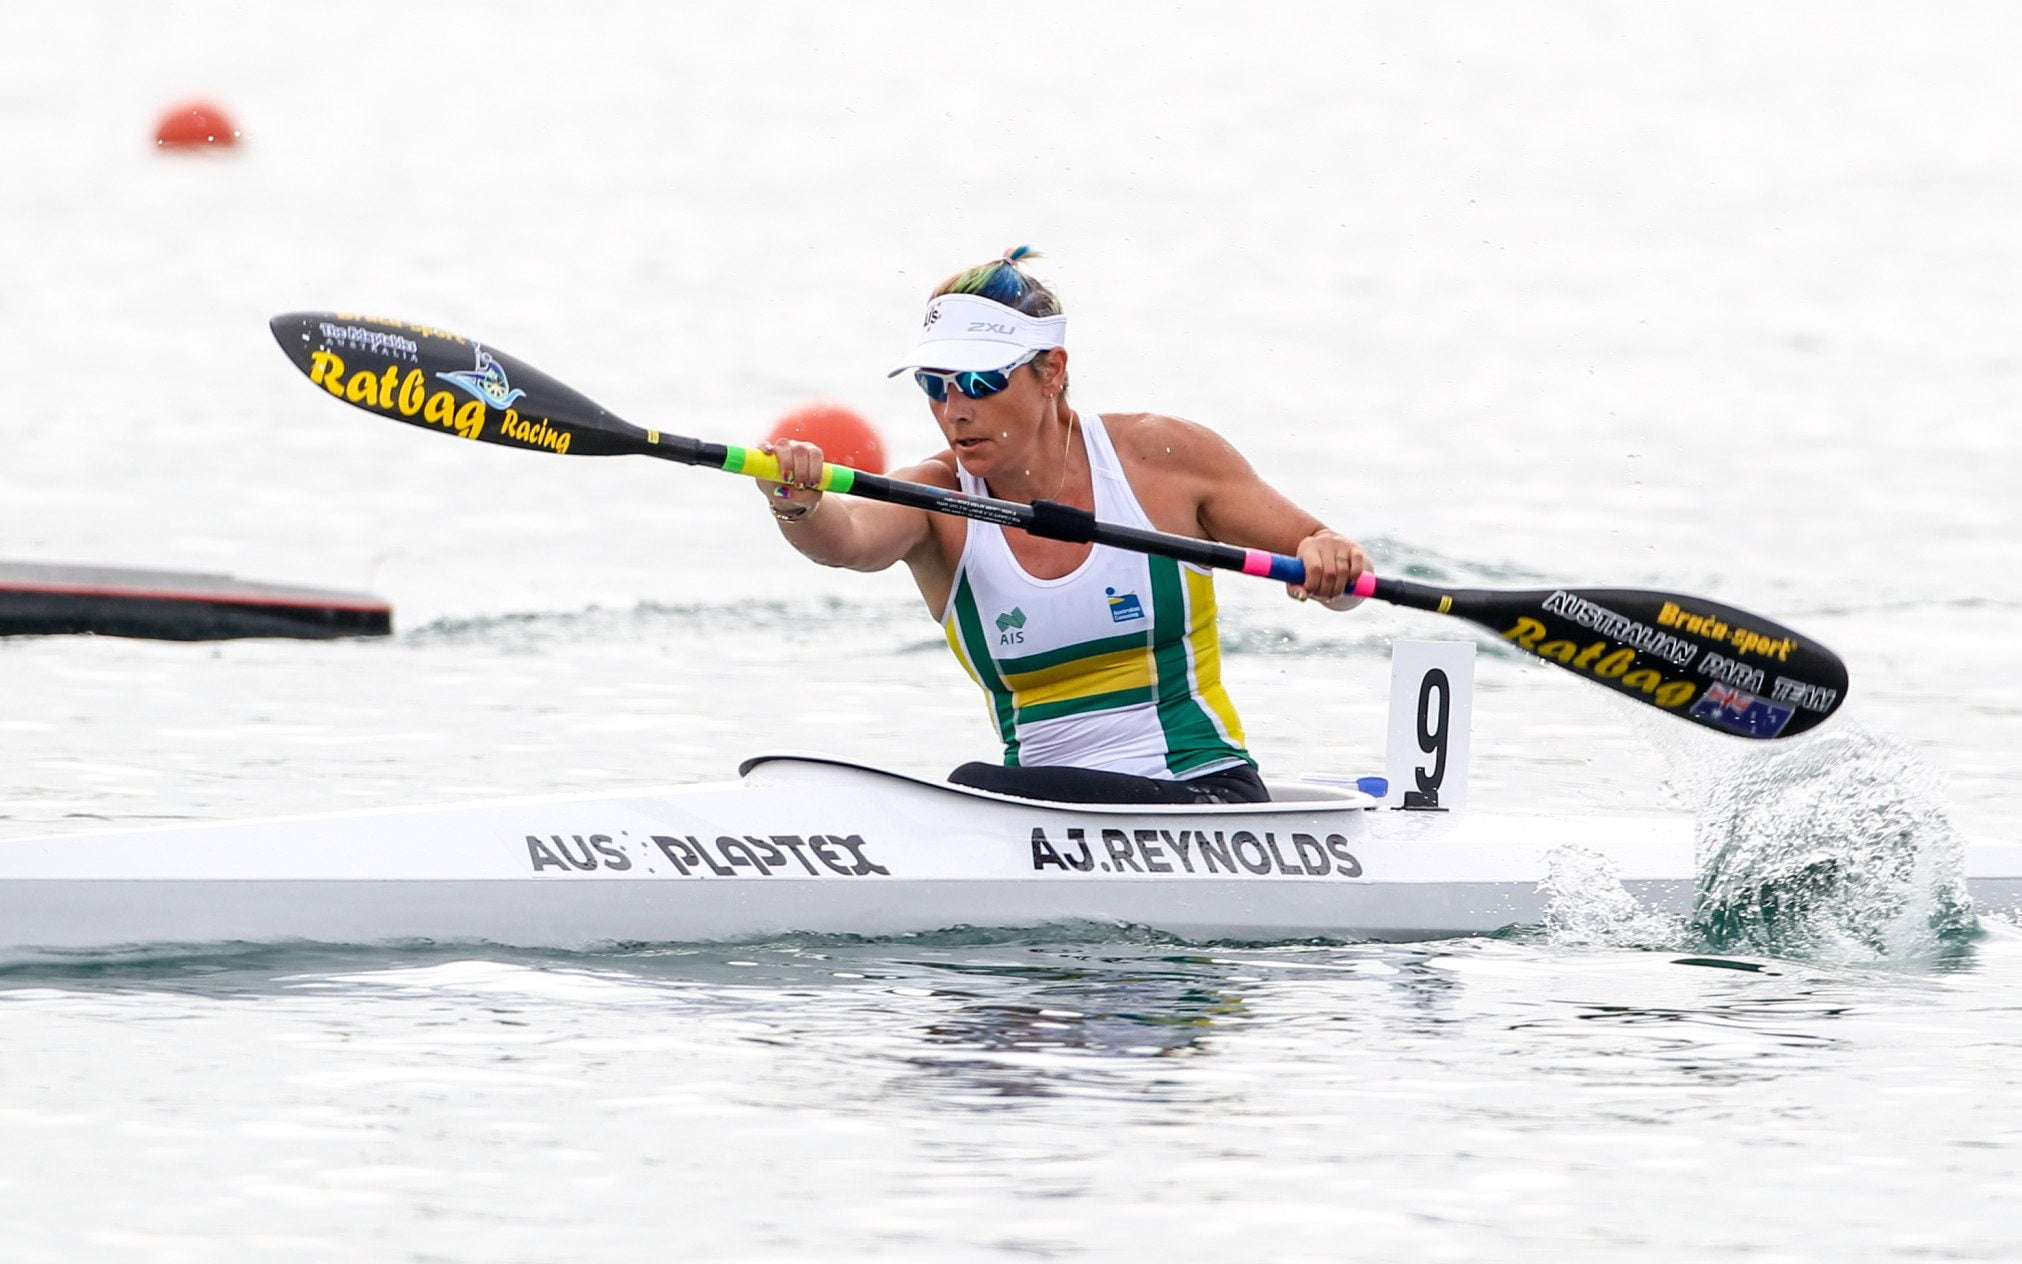 Reynolds wins Australia's first gold at World Championships